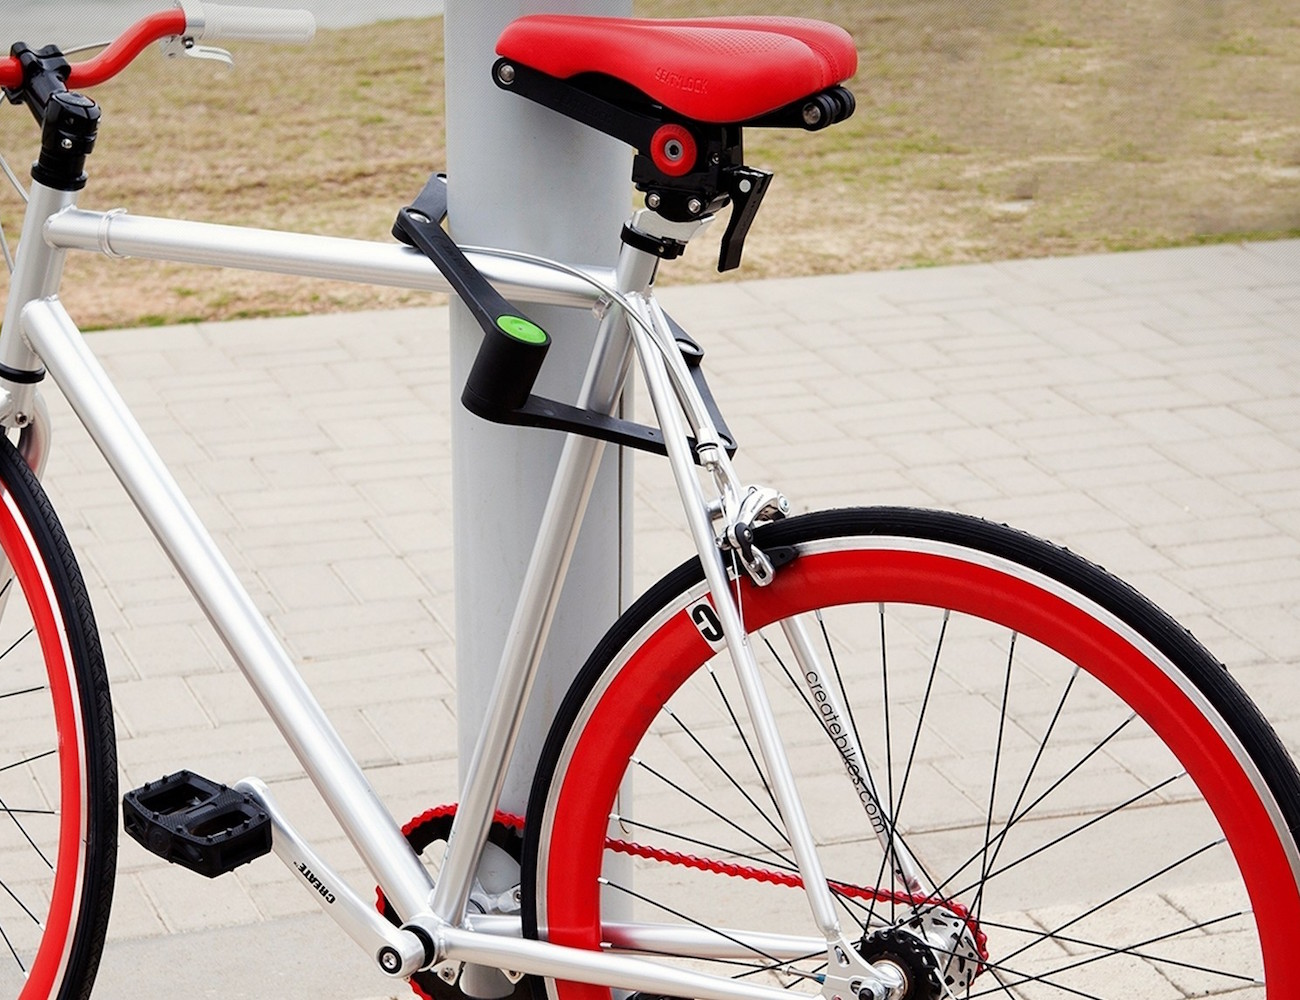 Foldylock – The Folding Bike Lock